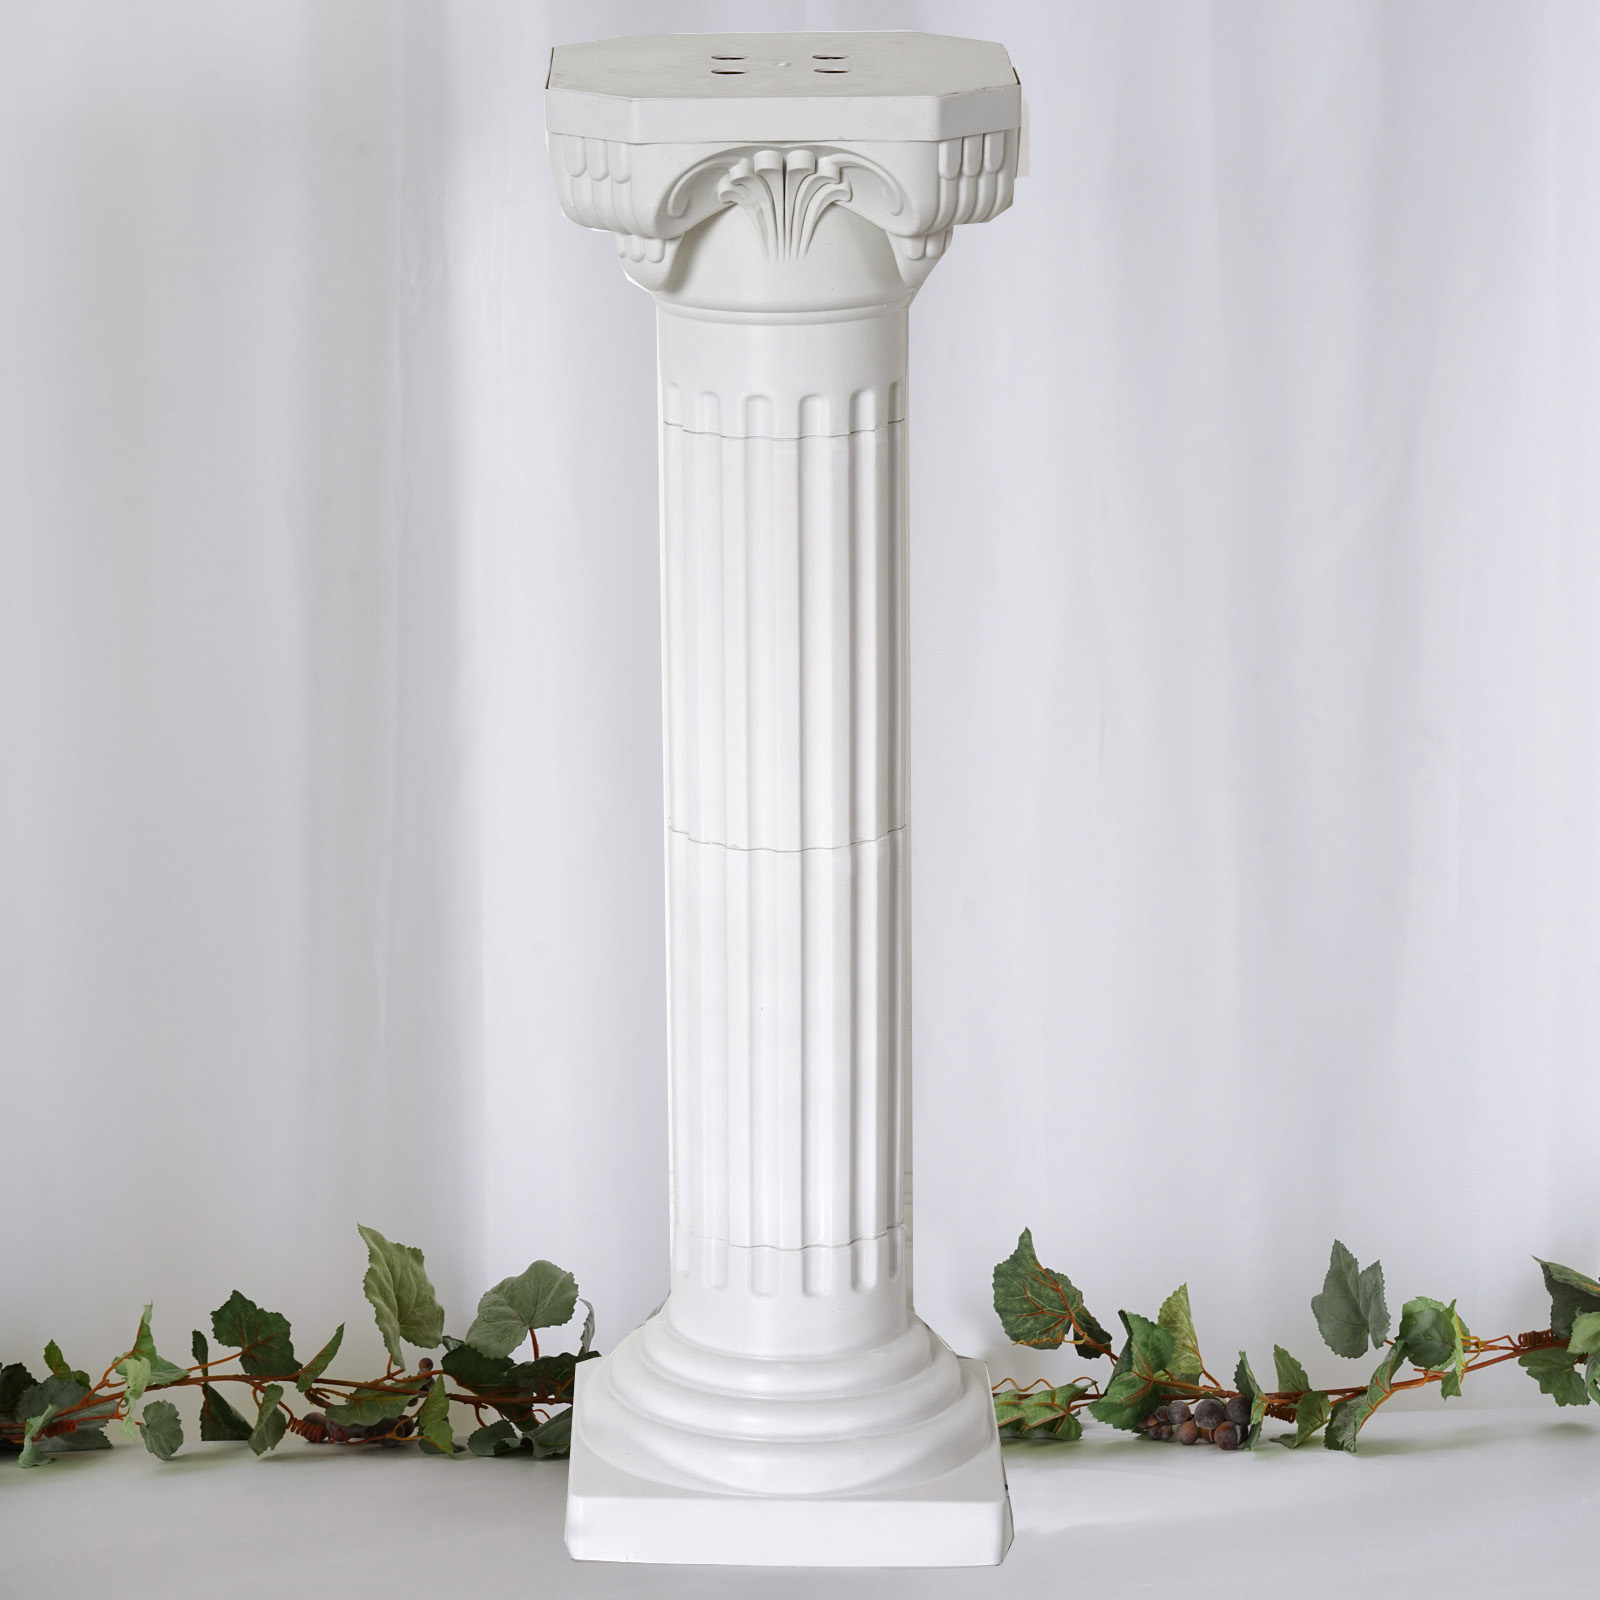 to decorative install shns design how hgtv decor columns decorating